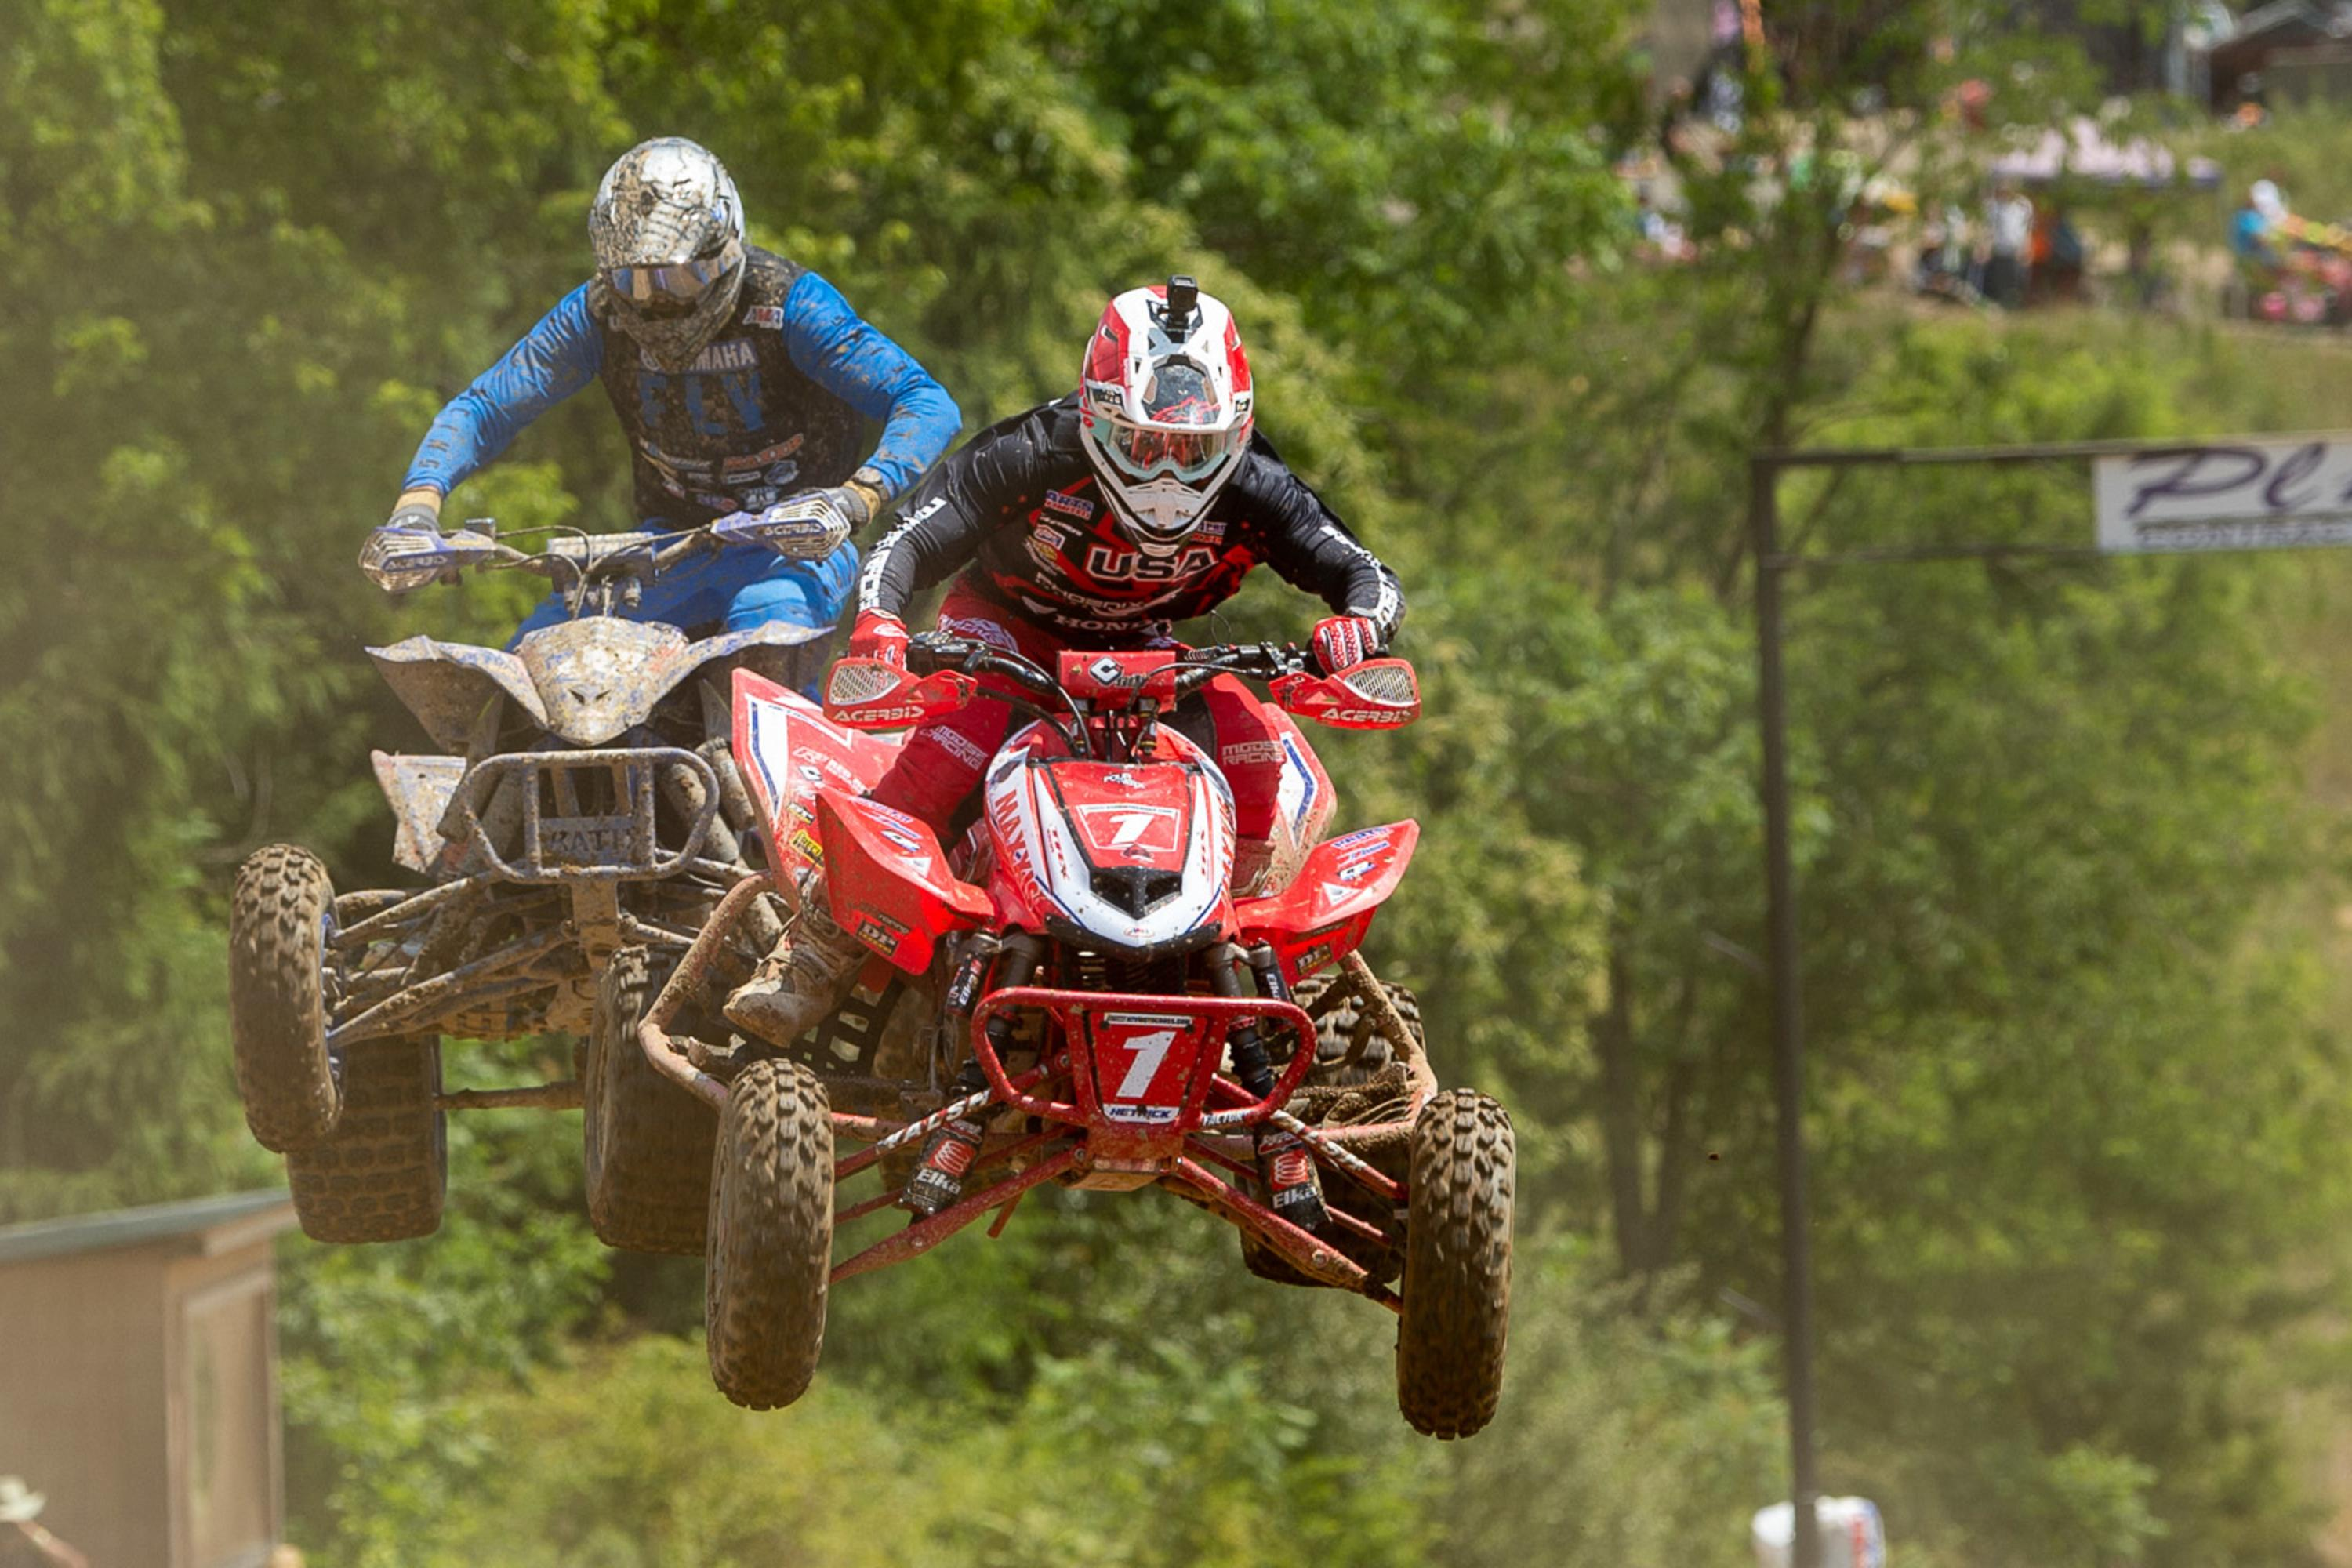 RLT Competition Bulletin 2020-14: Update to Pro Motocross, Loretta Lynn, GNCC and ATVMX Schedules